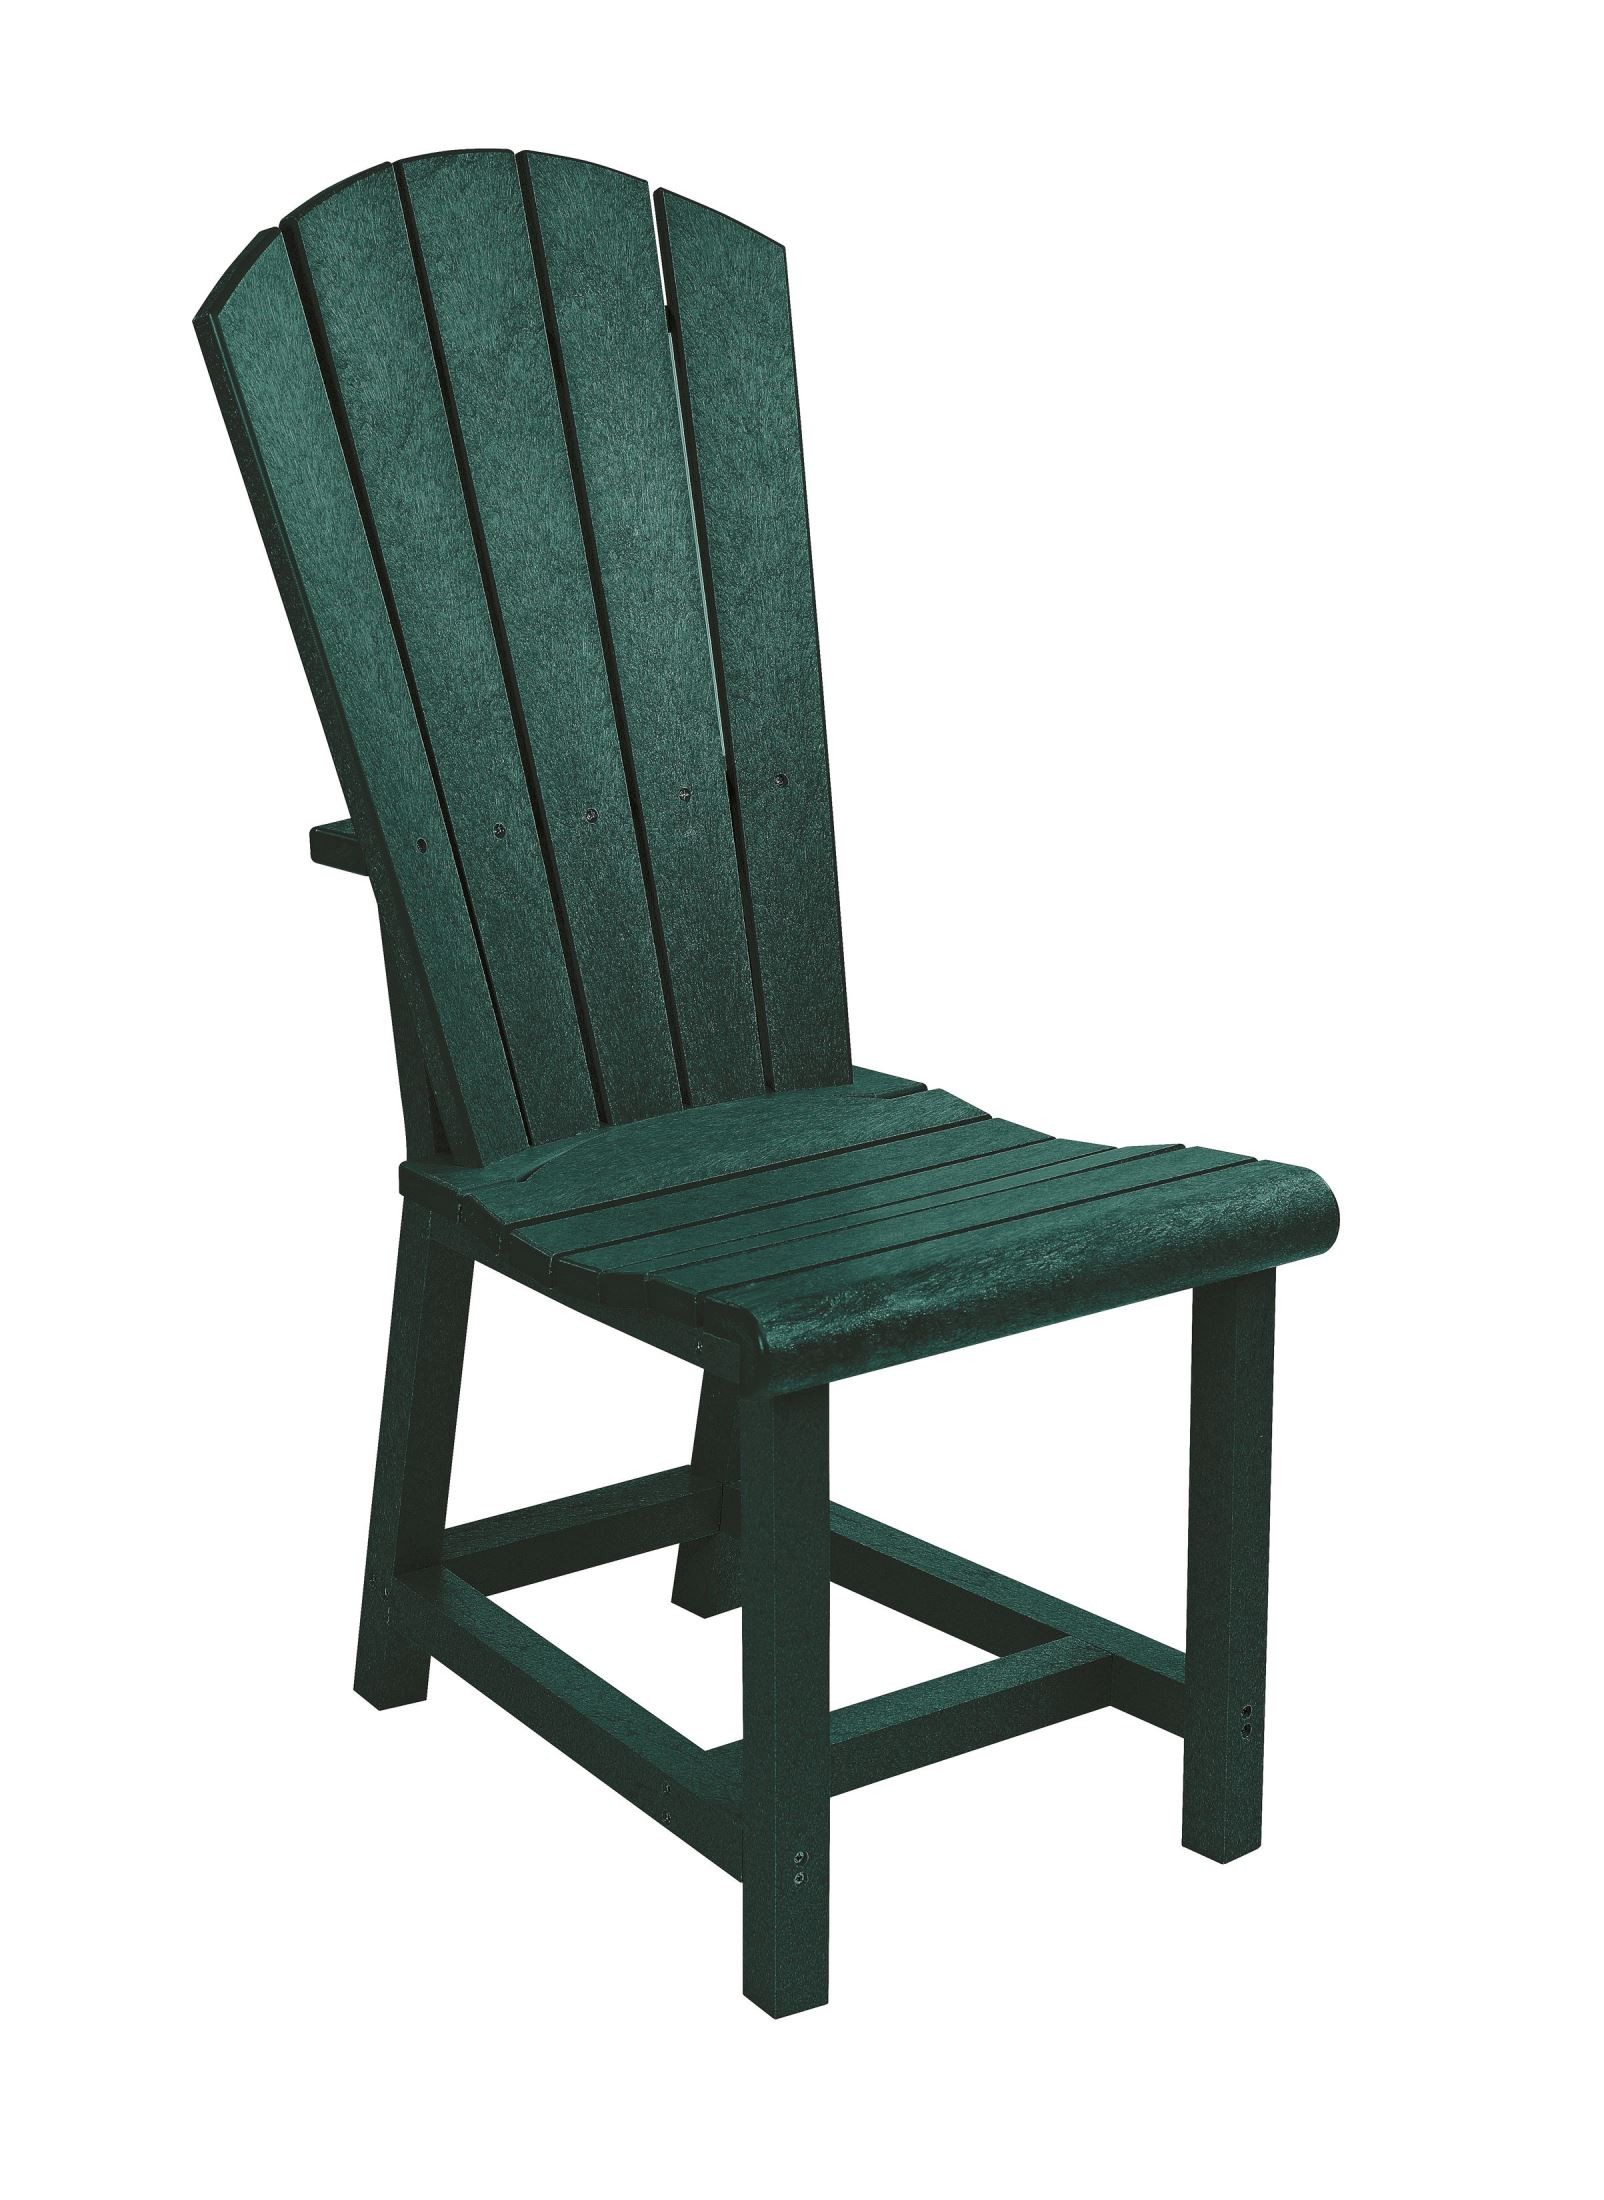 generations green adirondack dining side chair from cr plastic c11 06 coleman furniture. Black Bedroom Furniture Sets. Home Design Ideas